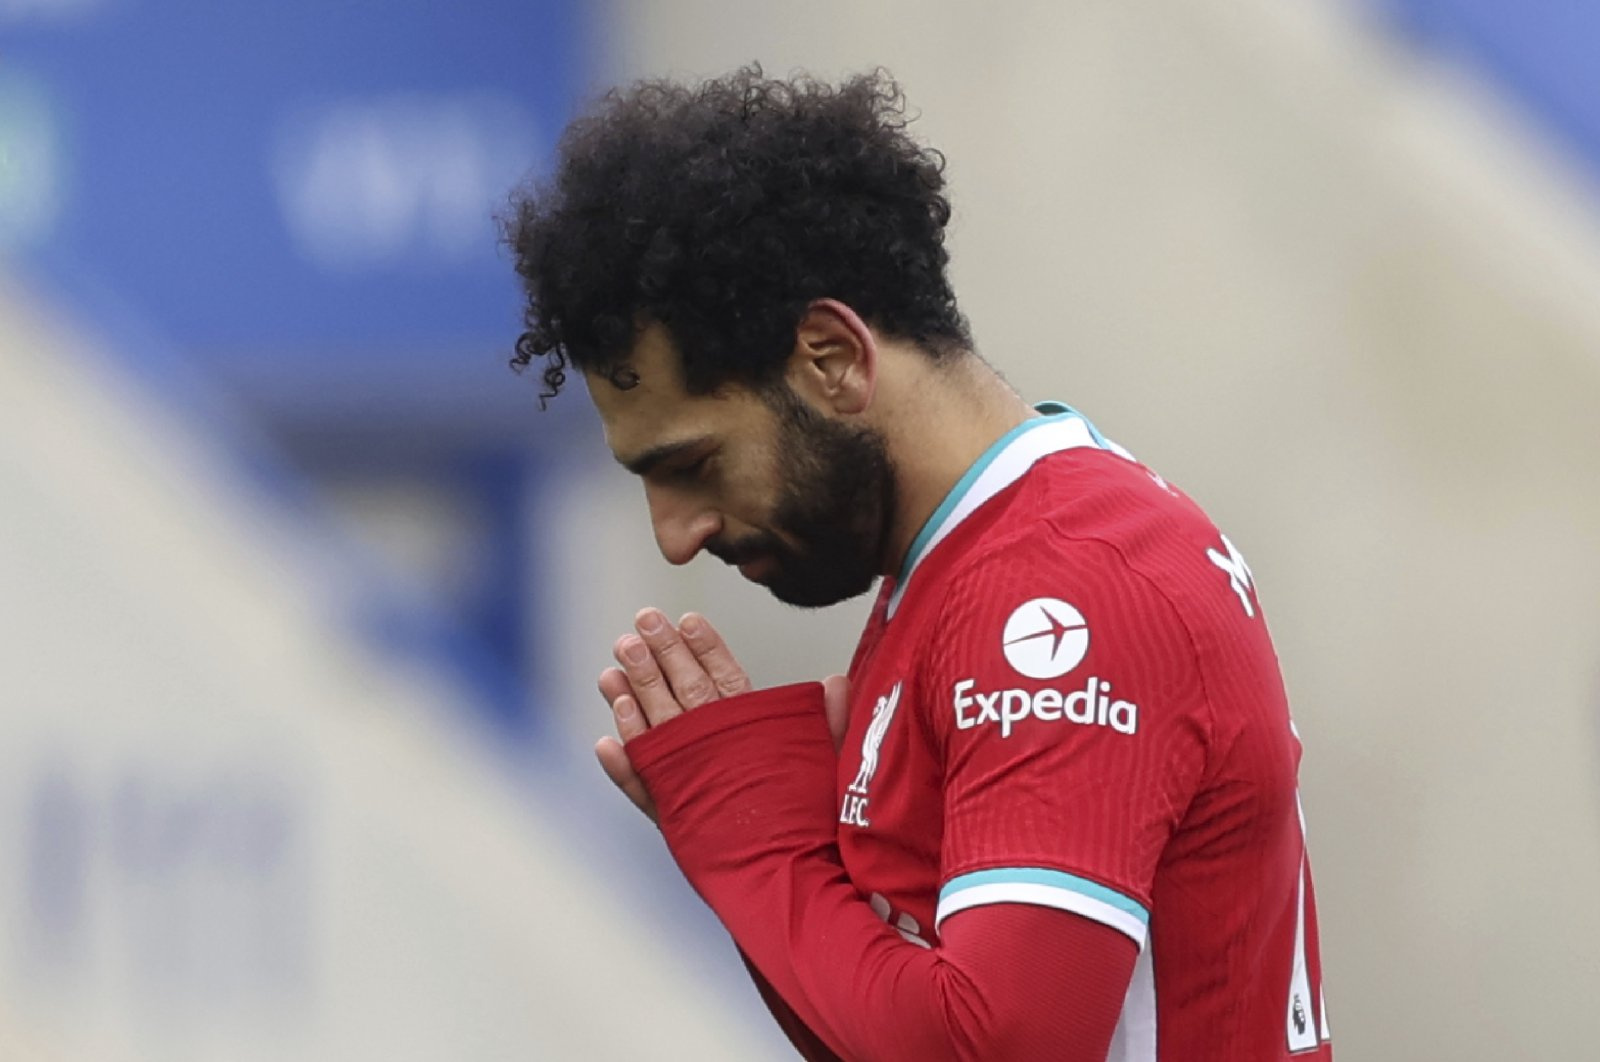 Liverpool's Mohamed Salah (R) celebrates scoring a goal against Leicester City at the King Power Stadium, Leicester, England, Feb. 13, 2021. (AP Photo)